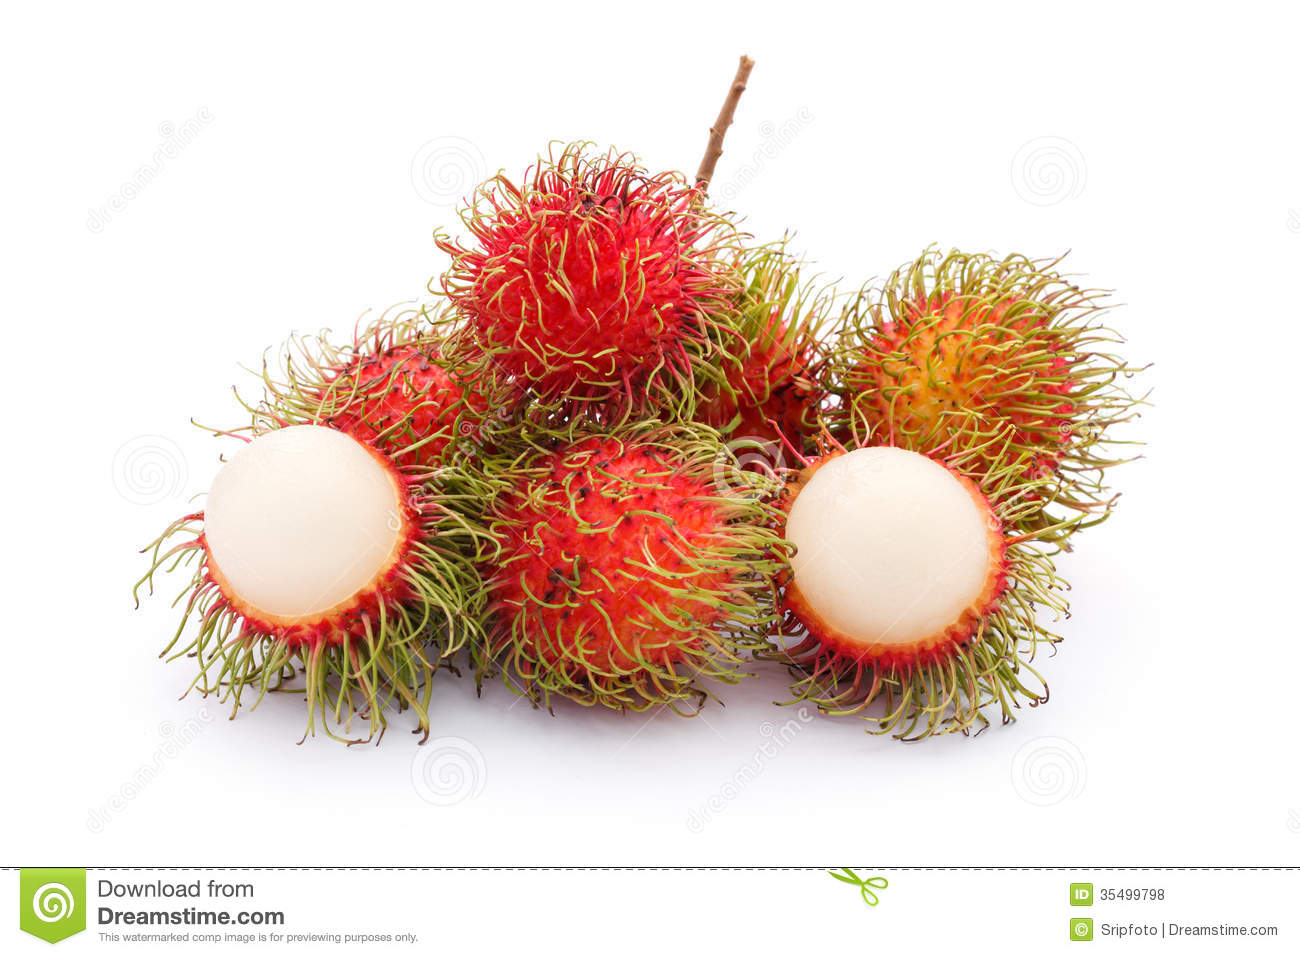 Rambutan Fruit for Health Benefits | My Favorite Blog | B-Thoughtful